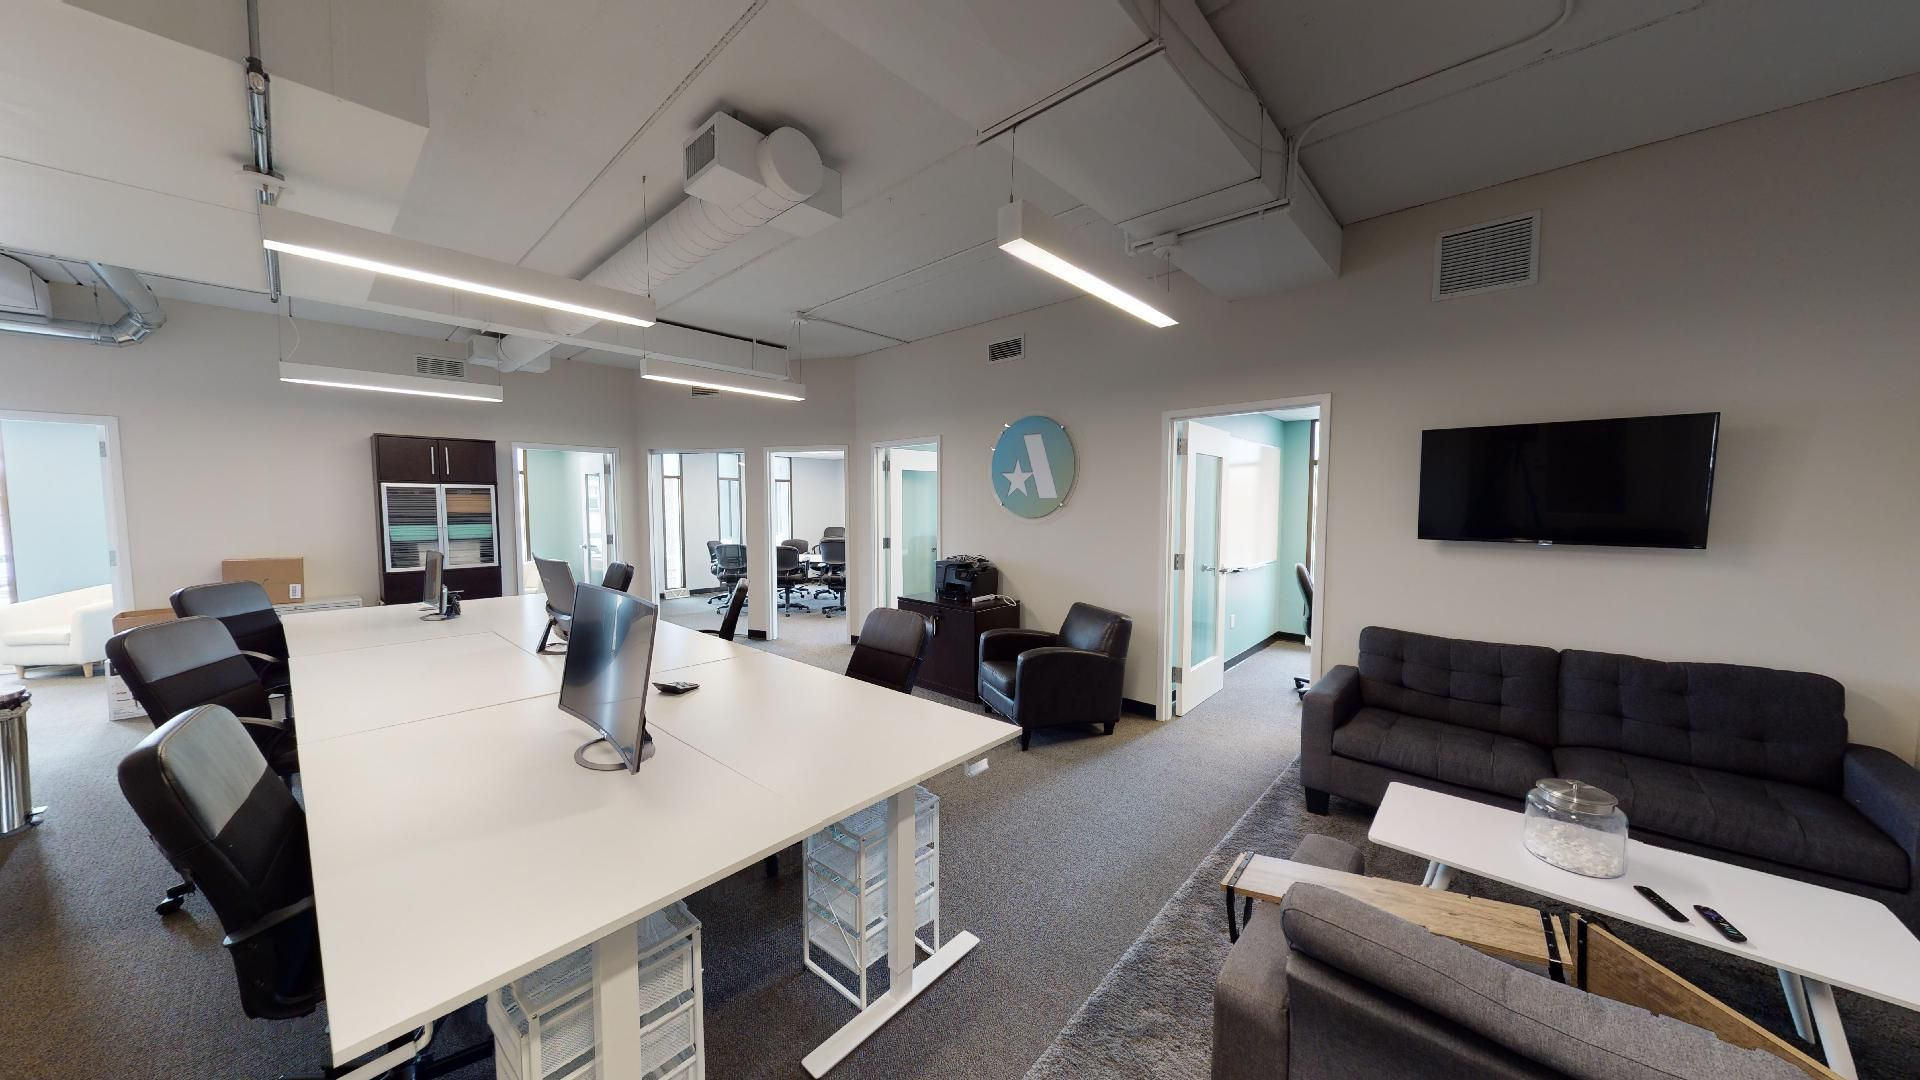 Interior of new Accessible360 office